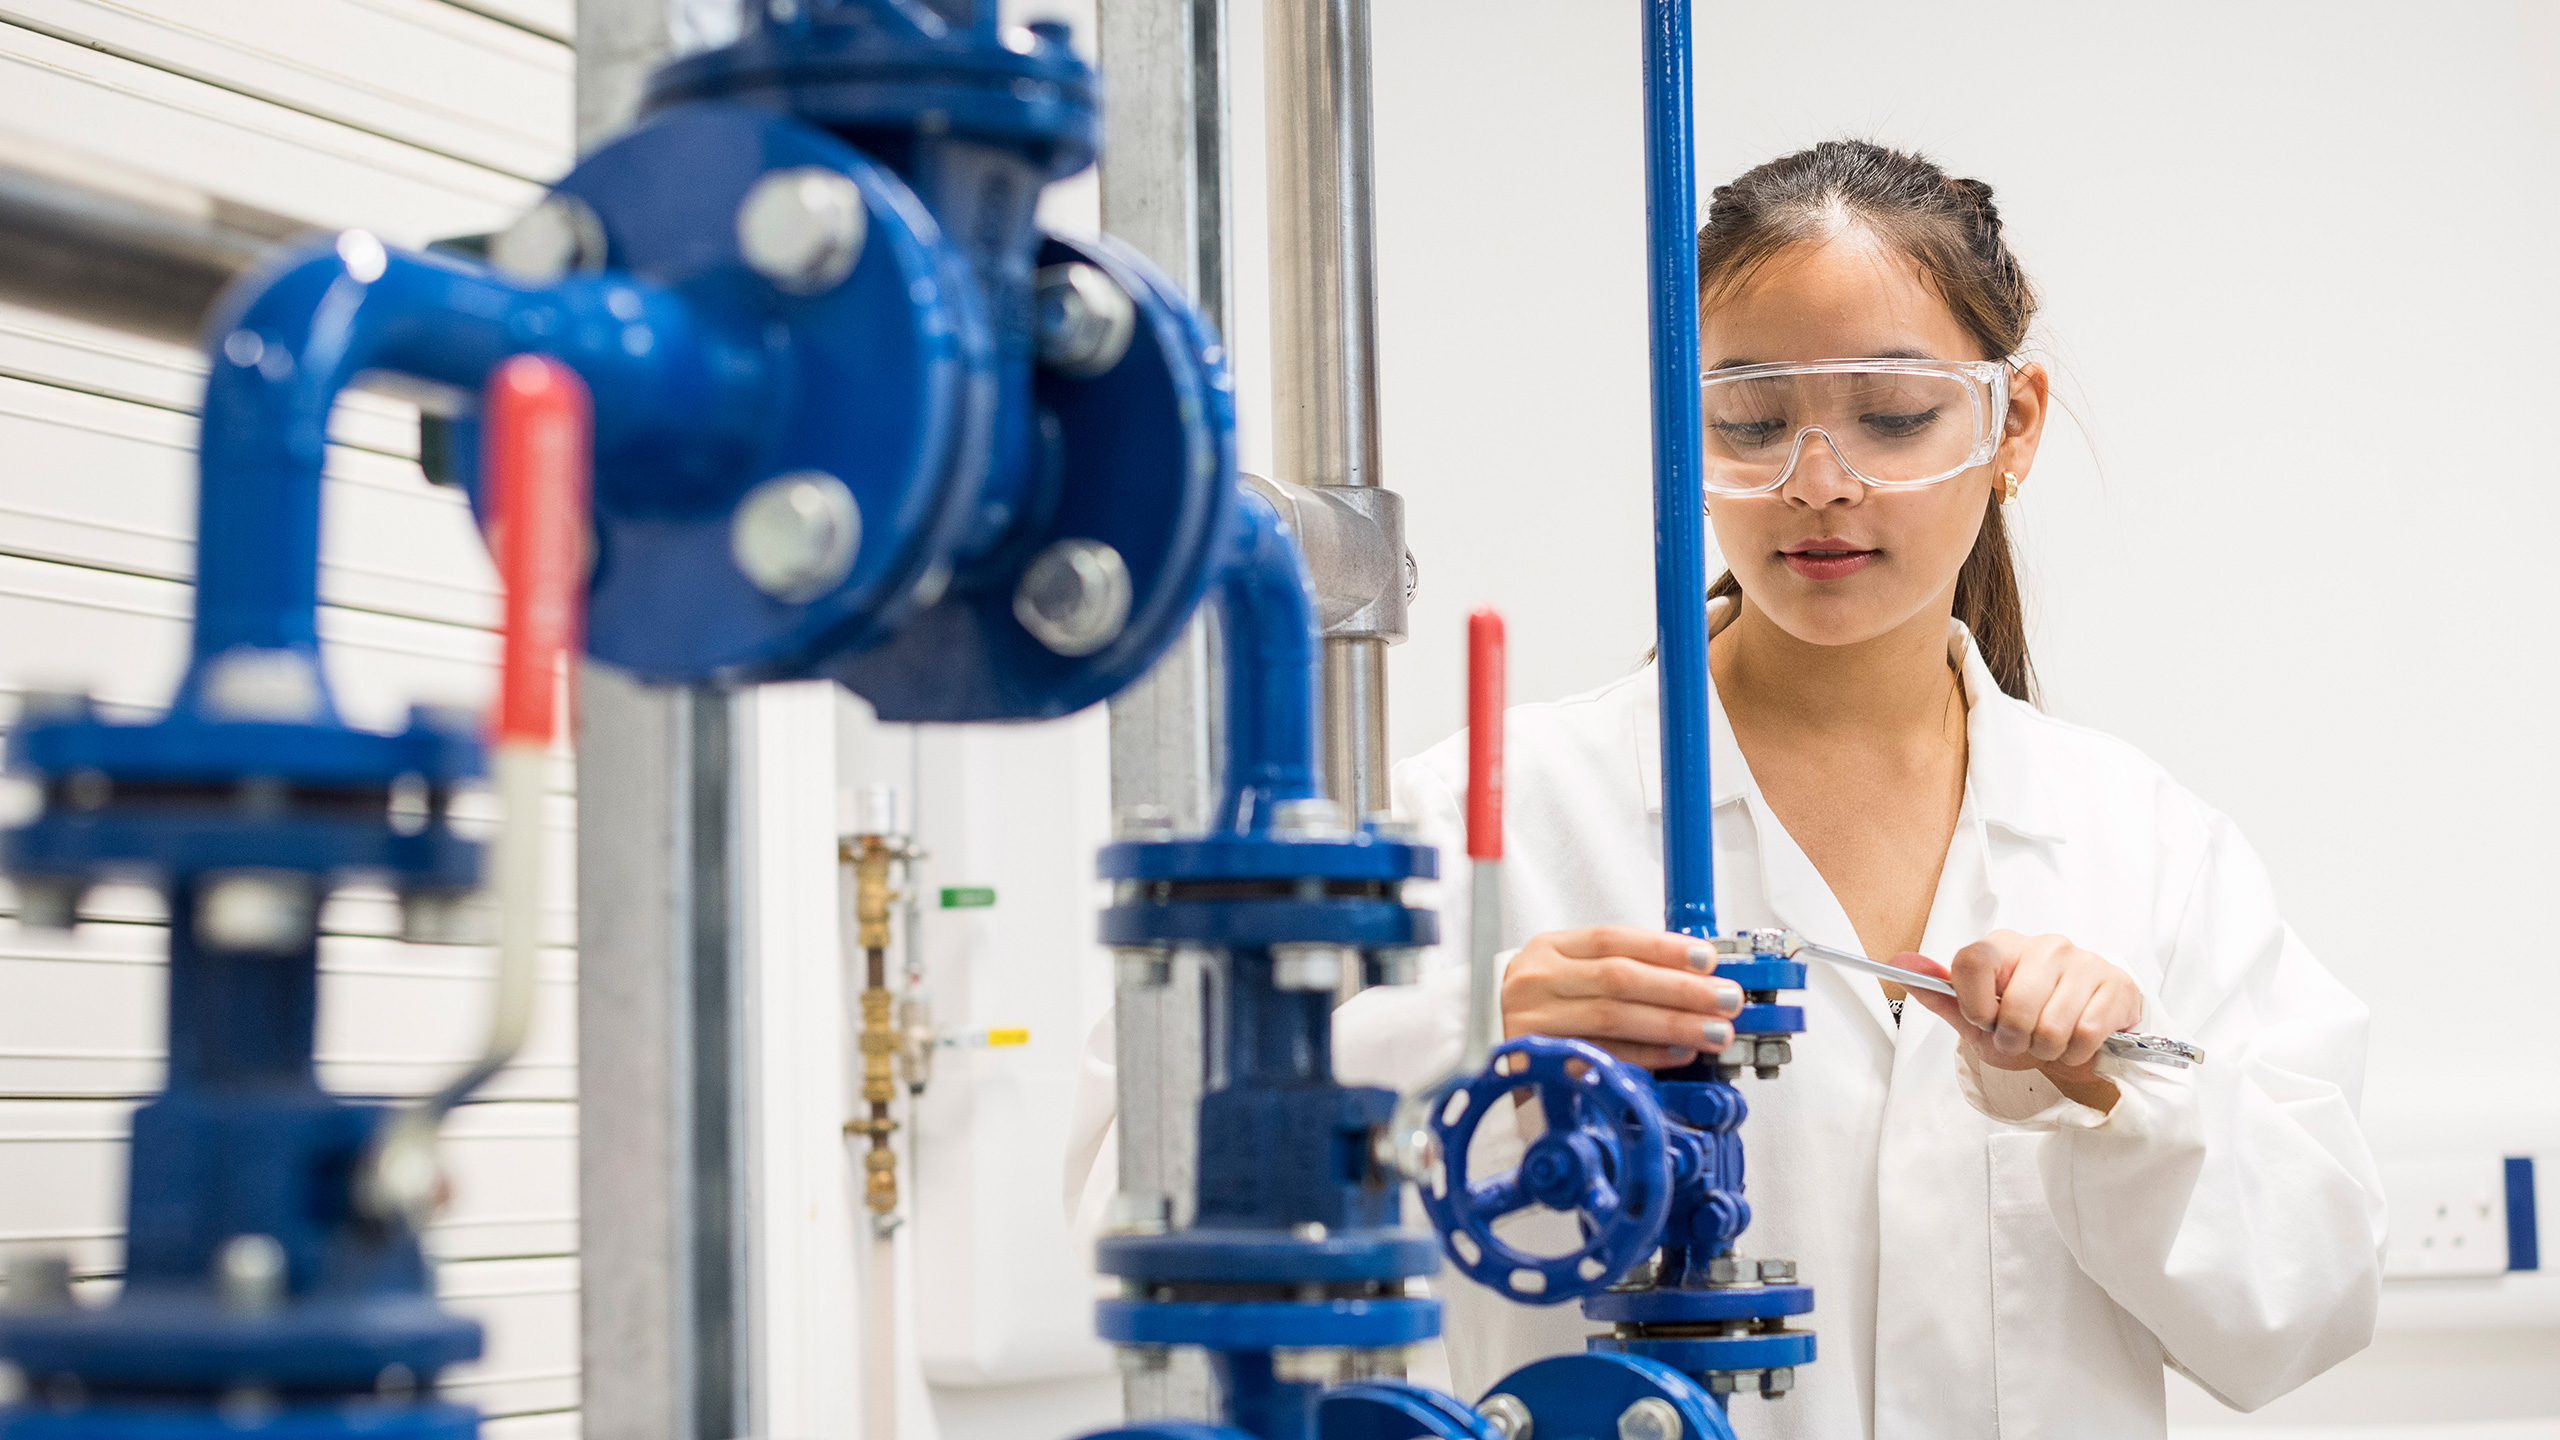 A student examines a rig in our chemical engineering lab.